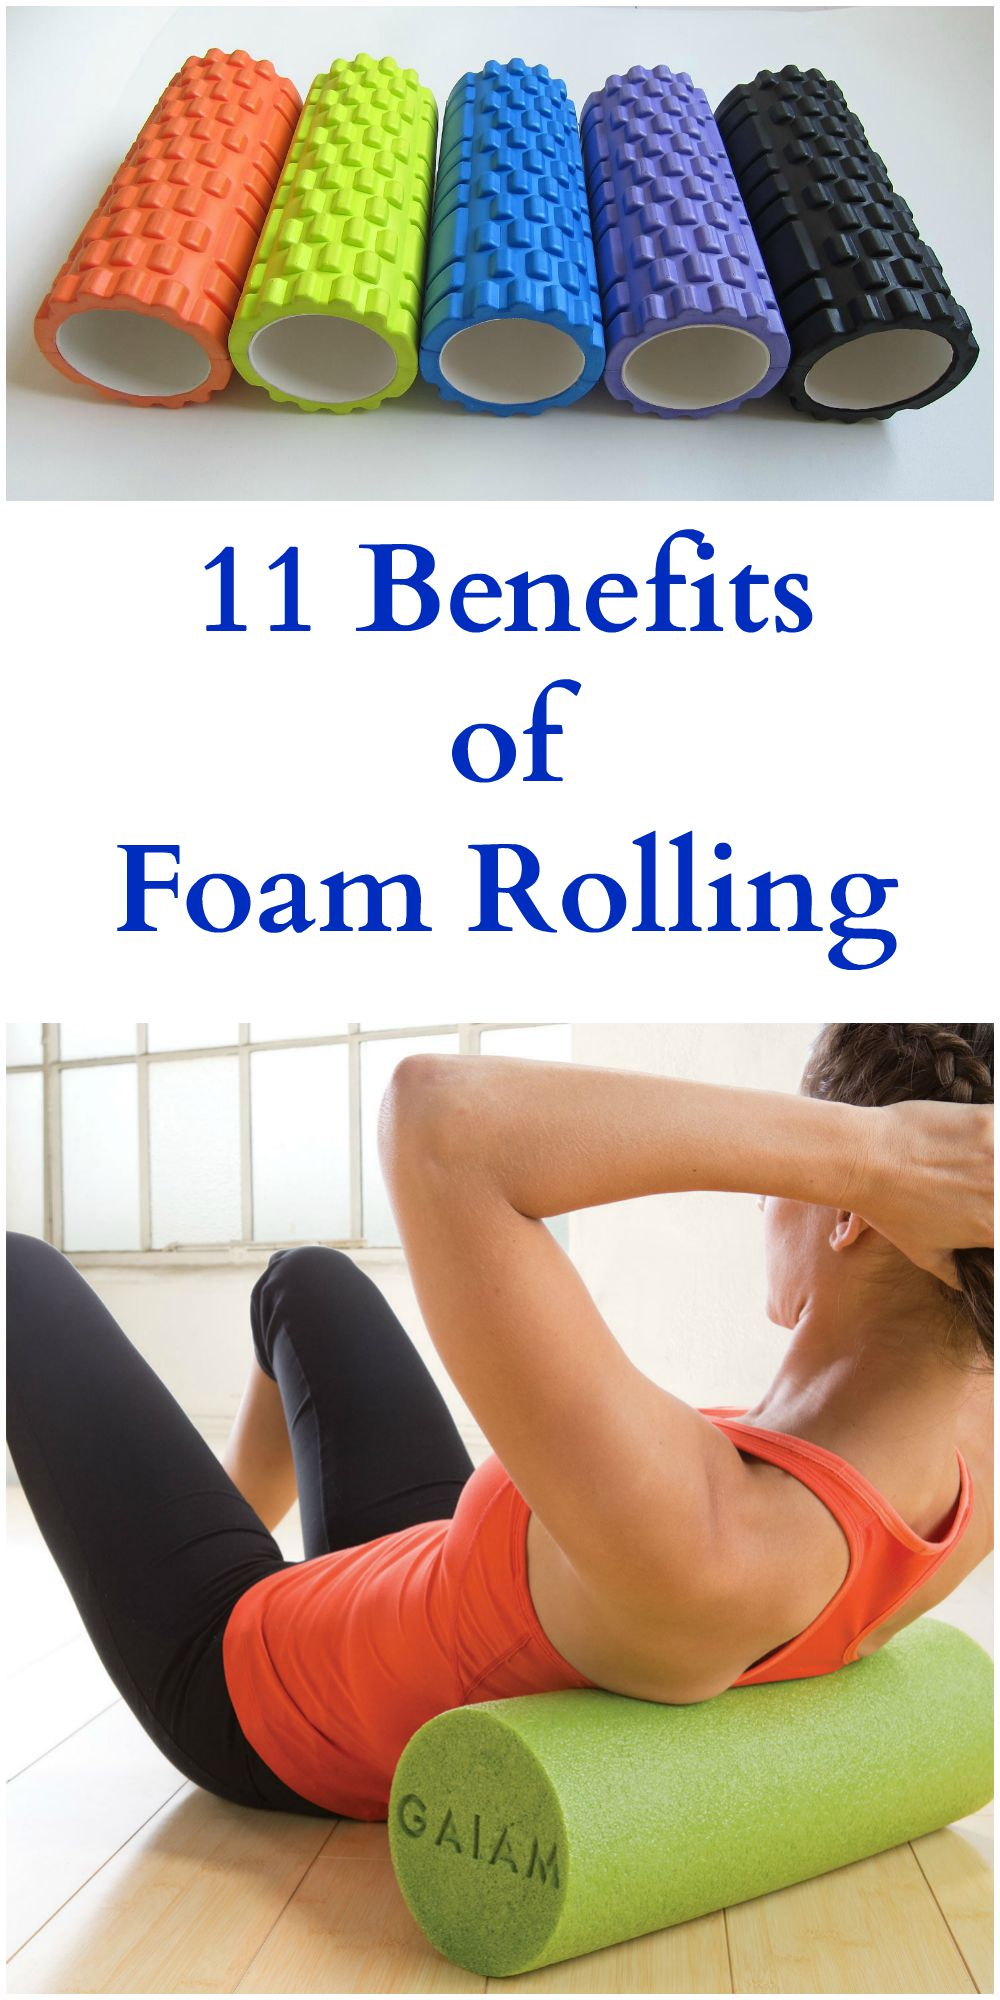 Foam rolling offers the same benefits of an intense sports massage without the huge price tag.